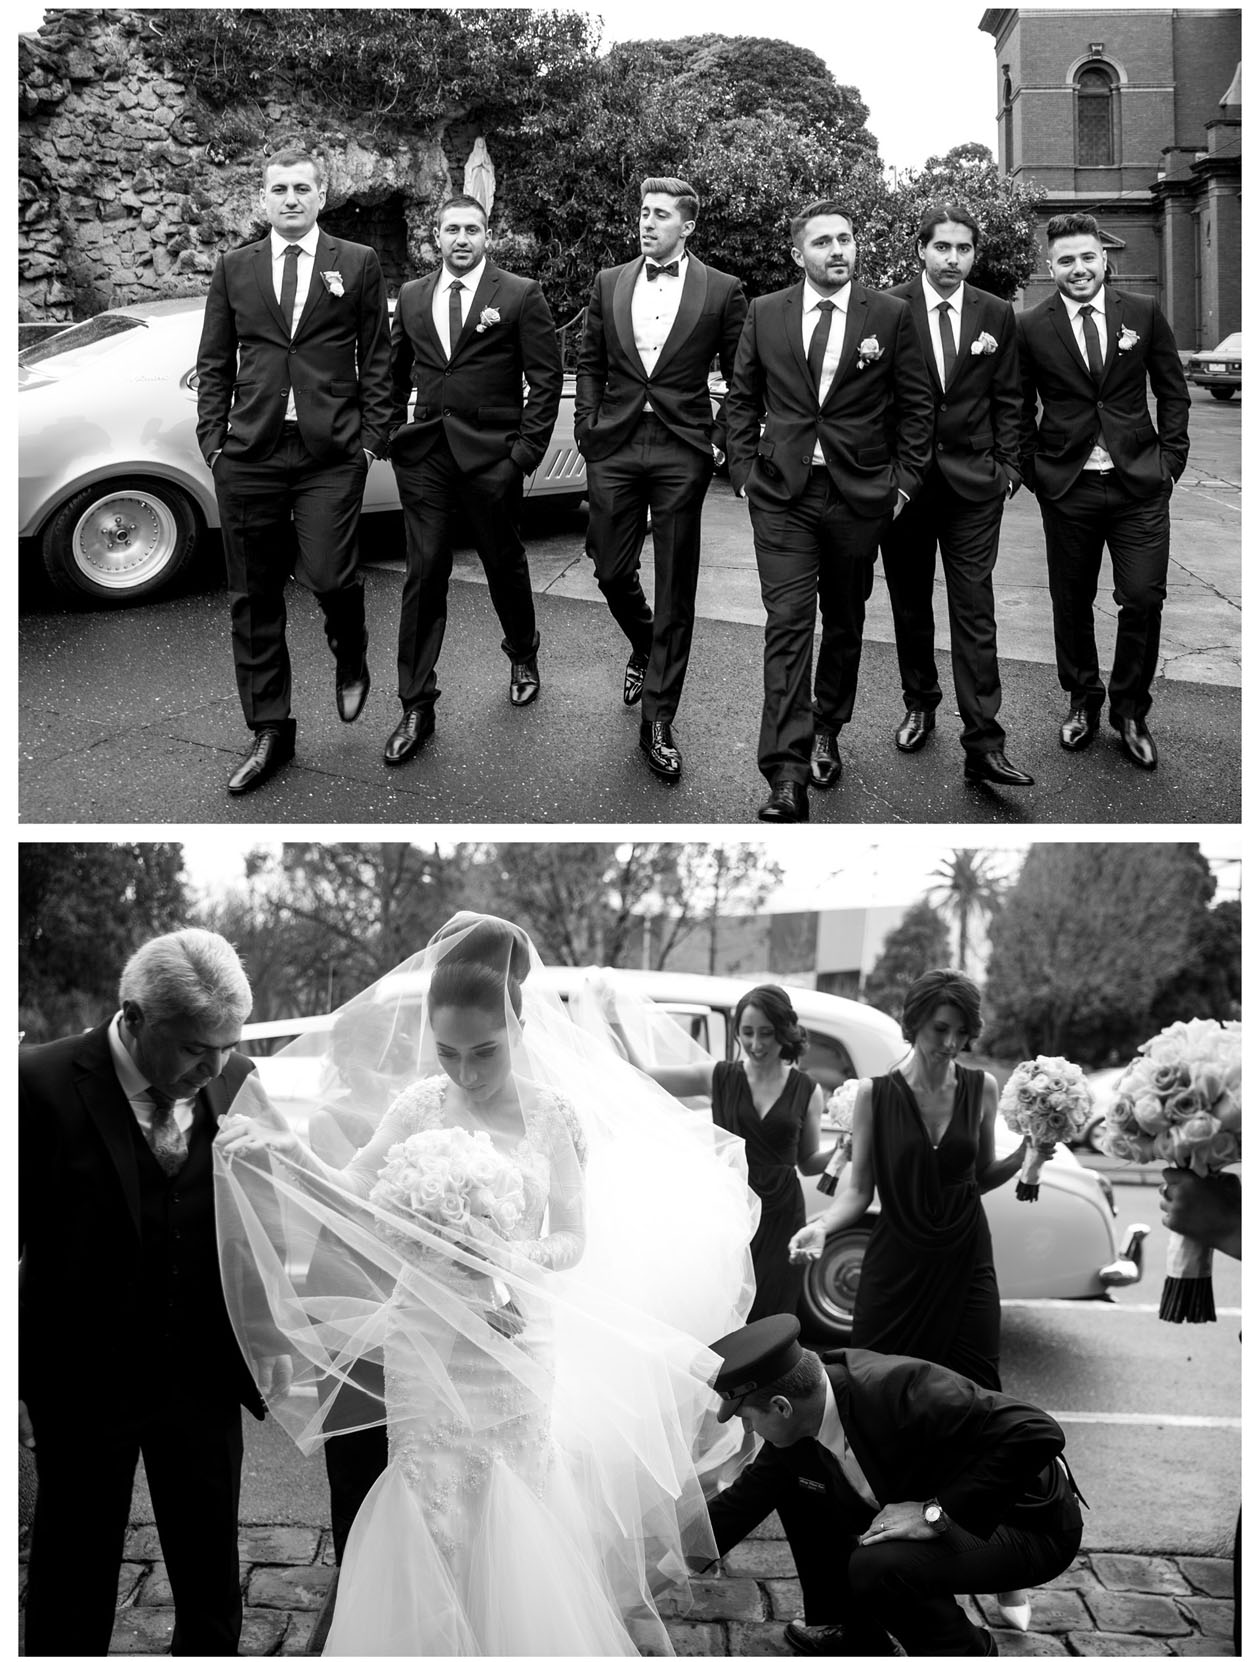 The groom and all groomsman take photos in front of church and bride just arrived with her Dad